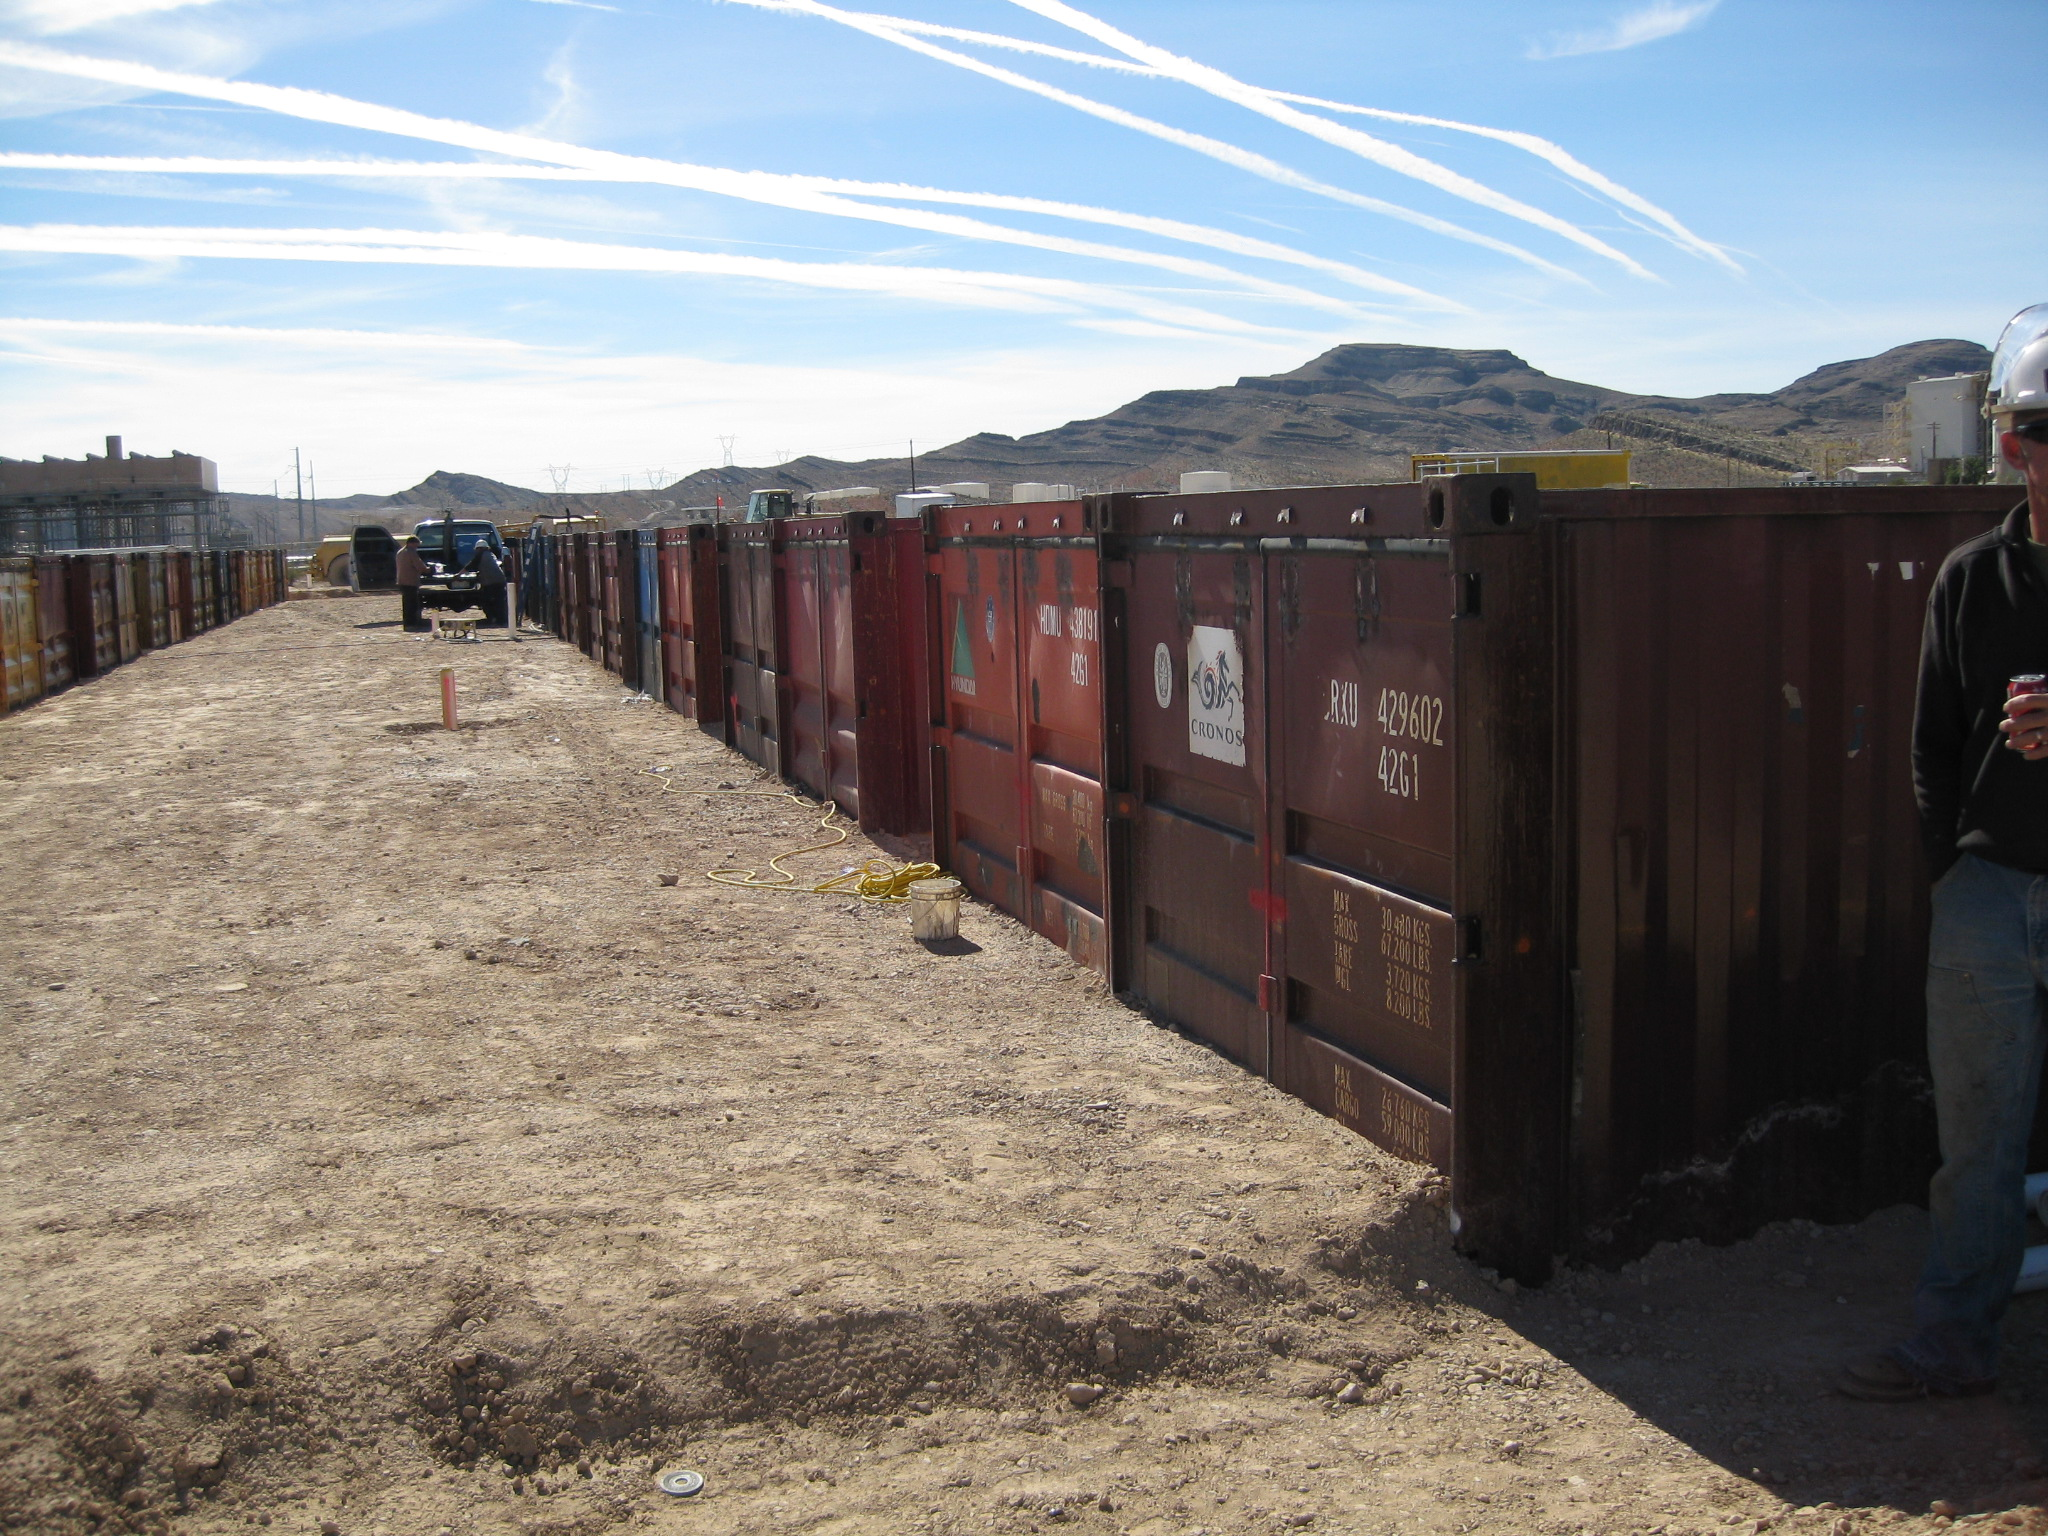 Shrimp Farm In The Desert Shipping Containers At A Fair